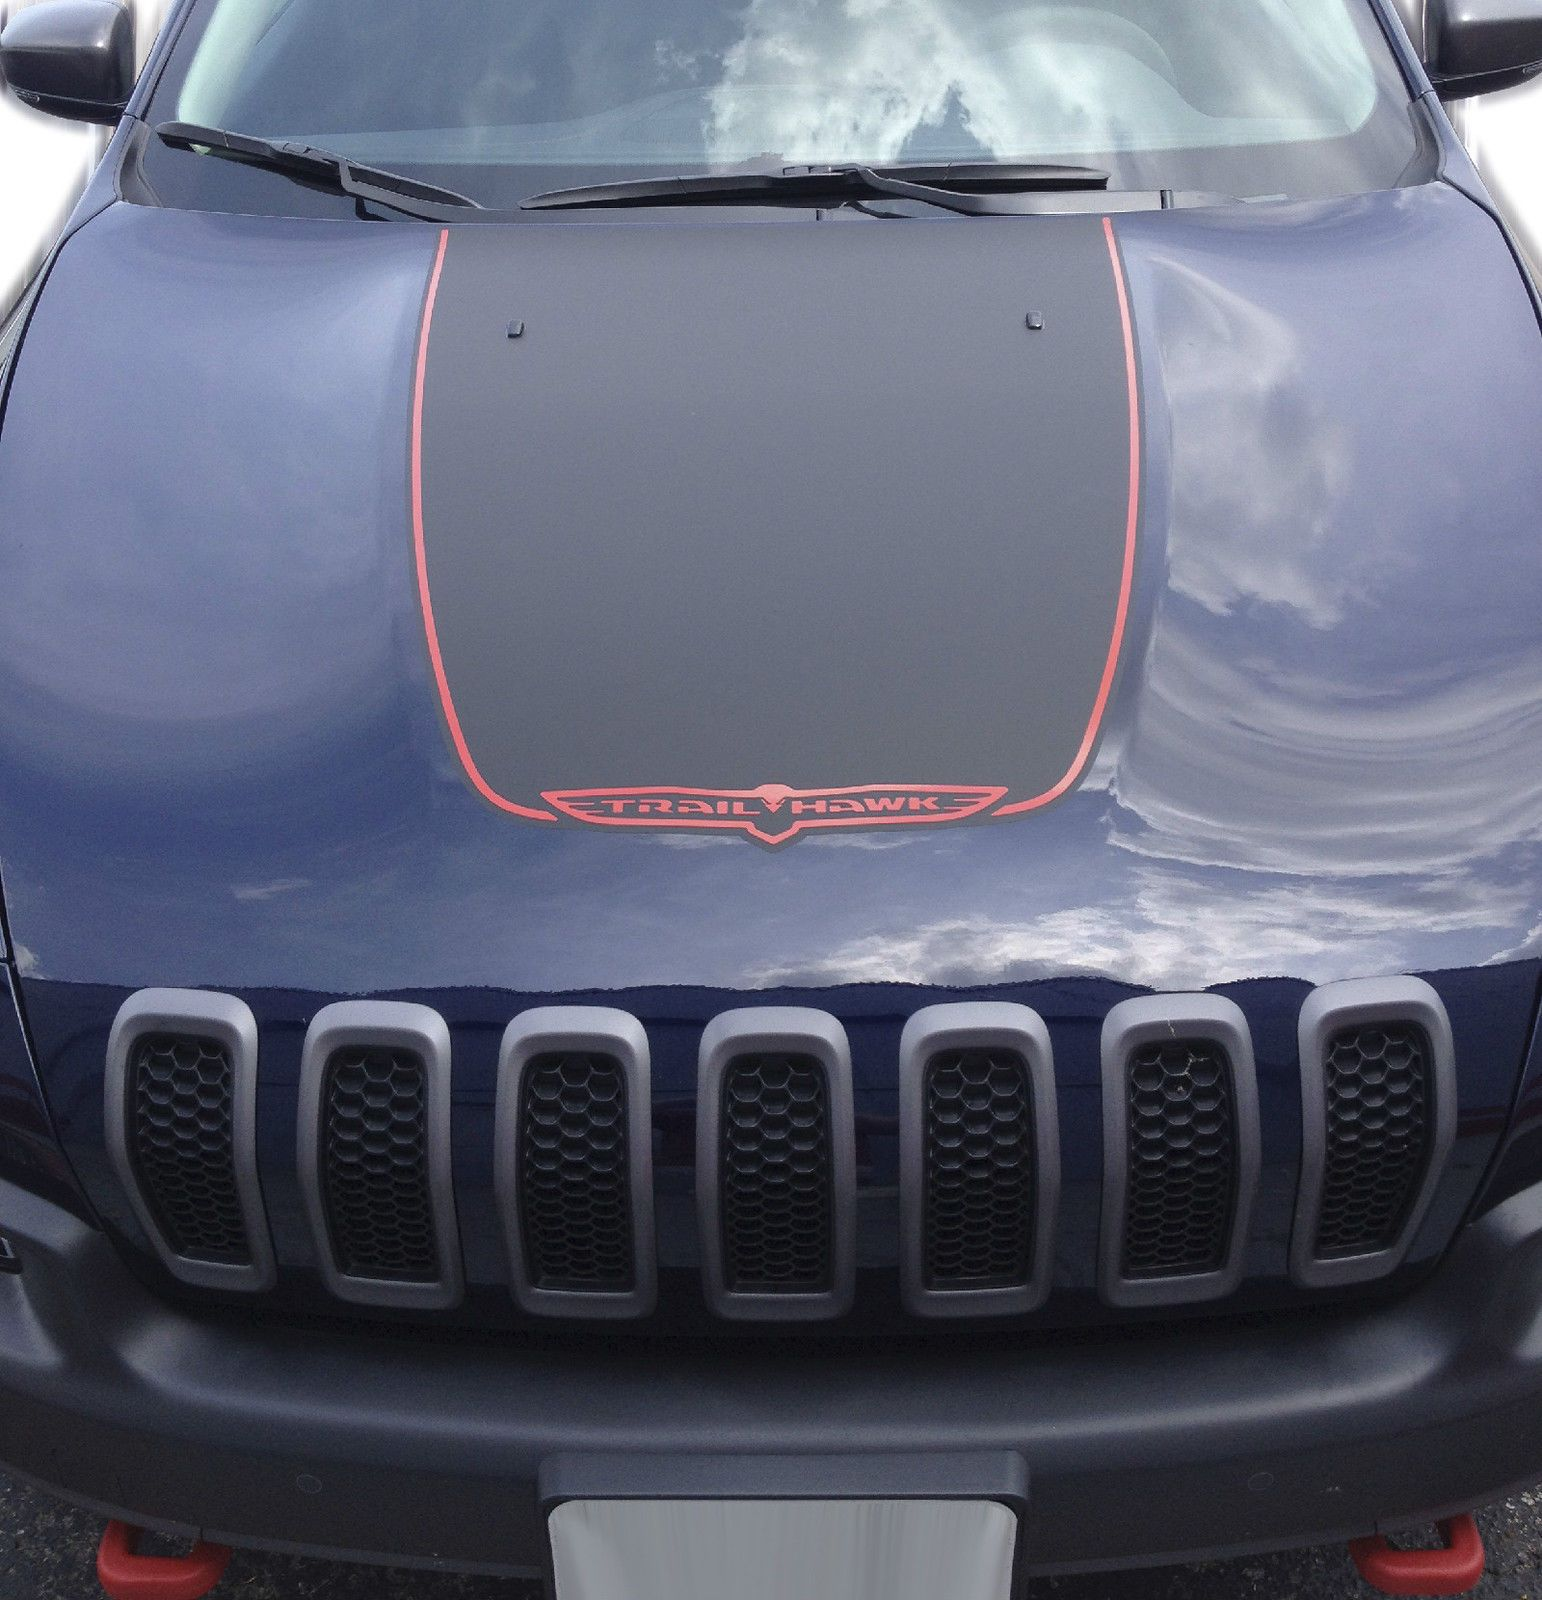 Jeep Cherokee Trailhawk Black Satin Vinyl Hood Decal - Custom vinyl car hood decals